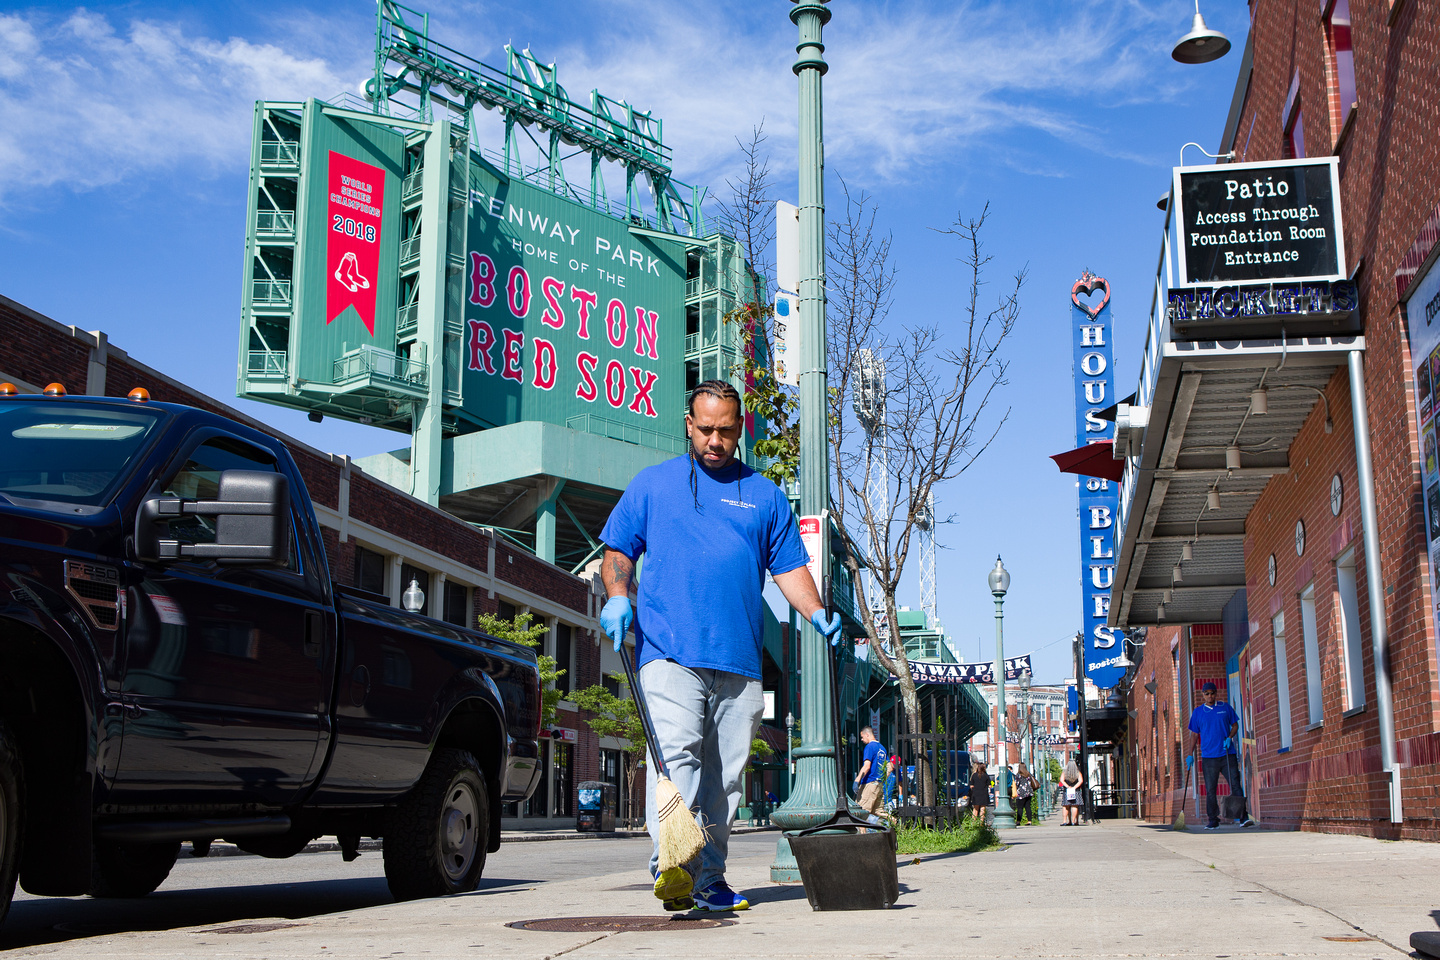 a client standing in front of the Fenway Park sign as he cleans the streets